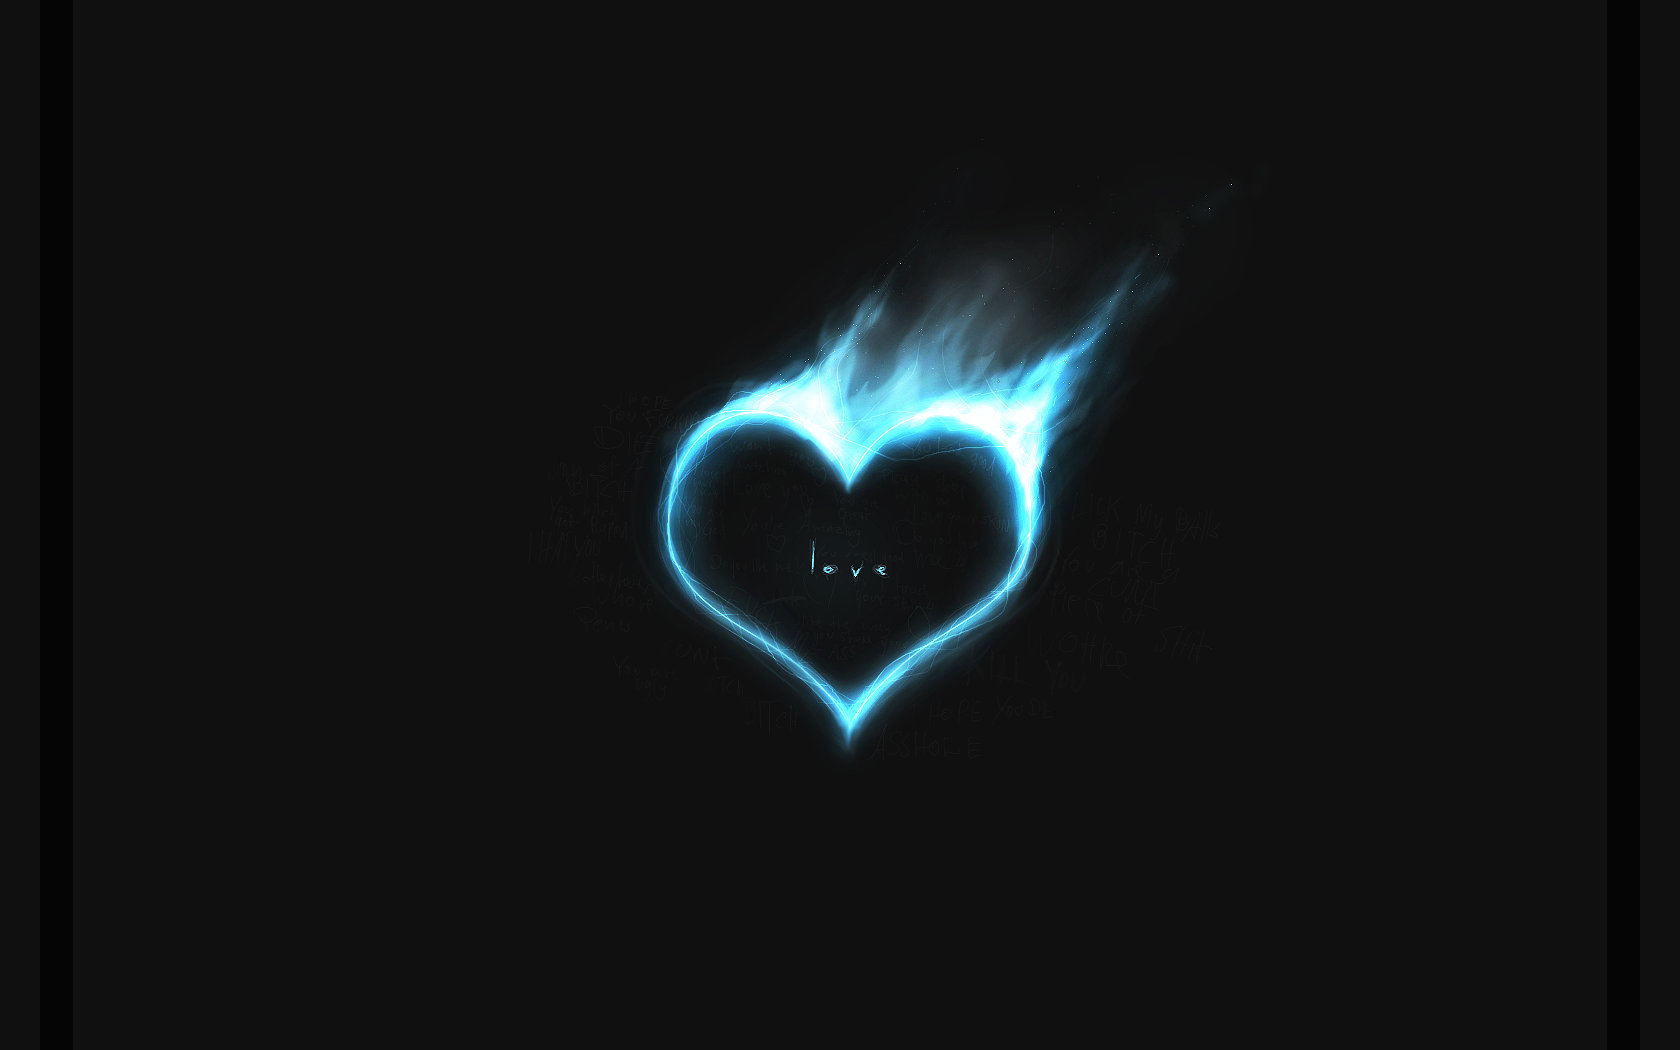 Image Blue Heart In Fire Wallpapers And Stock Photos